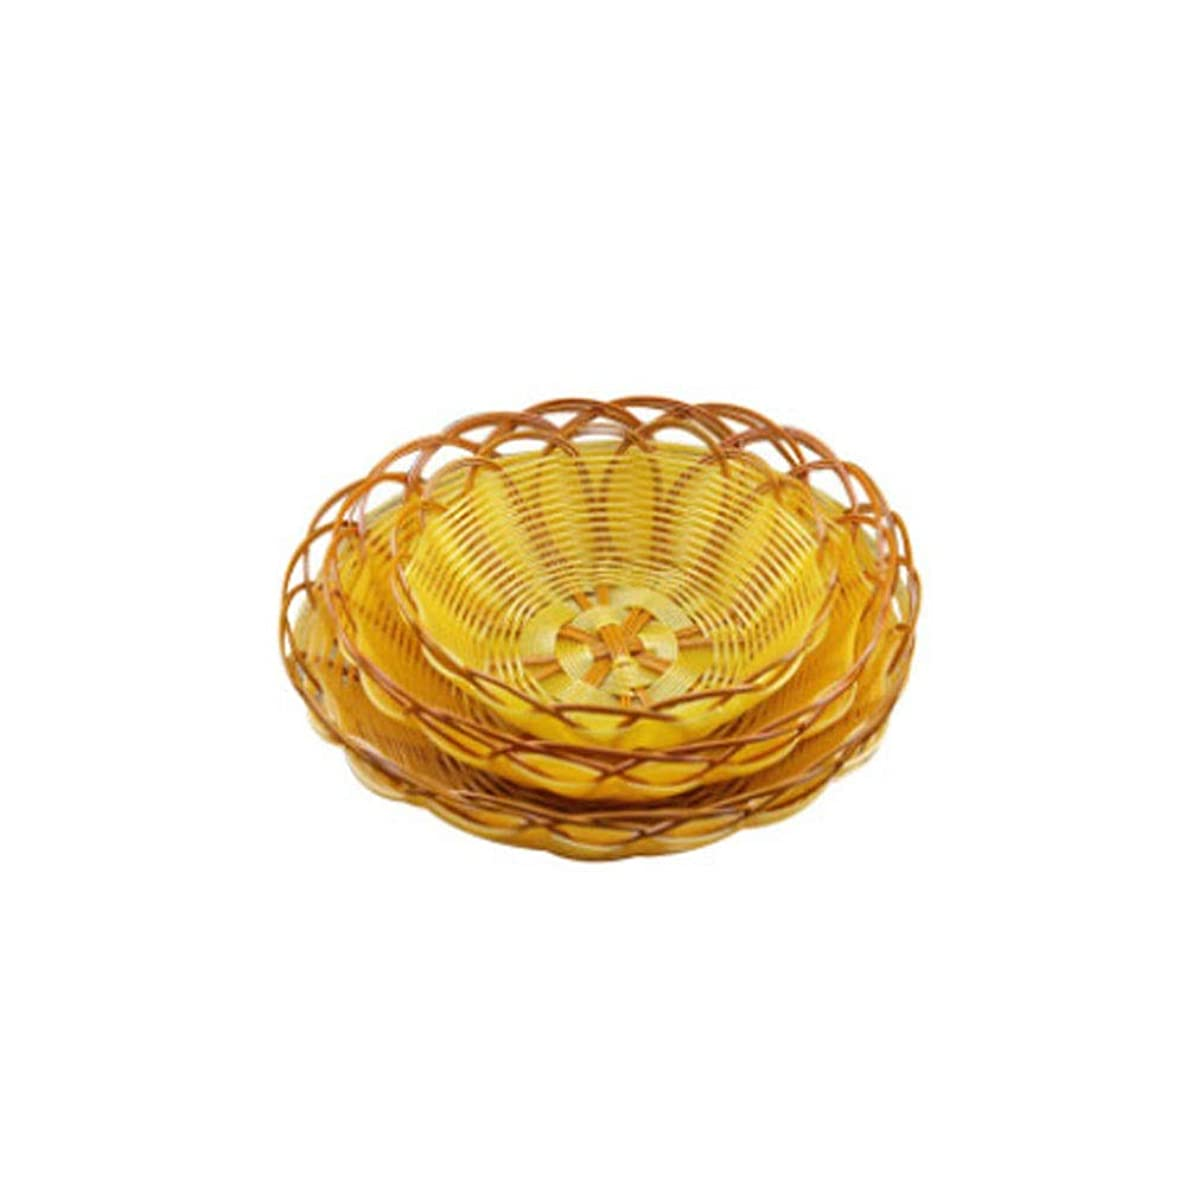 Qiyuezhuangshi Bread Basket, Yellow Imitation Vine Fruit Bowl, Small and Exquisite Snack/Rice Basket (Yellow, 153cm) (Color : Yellow, Size : 153cm)